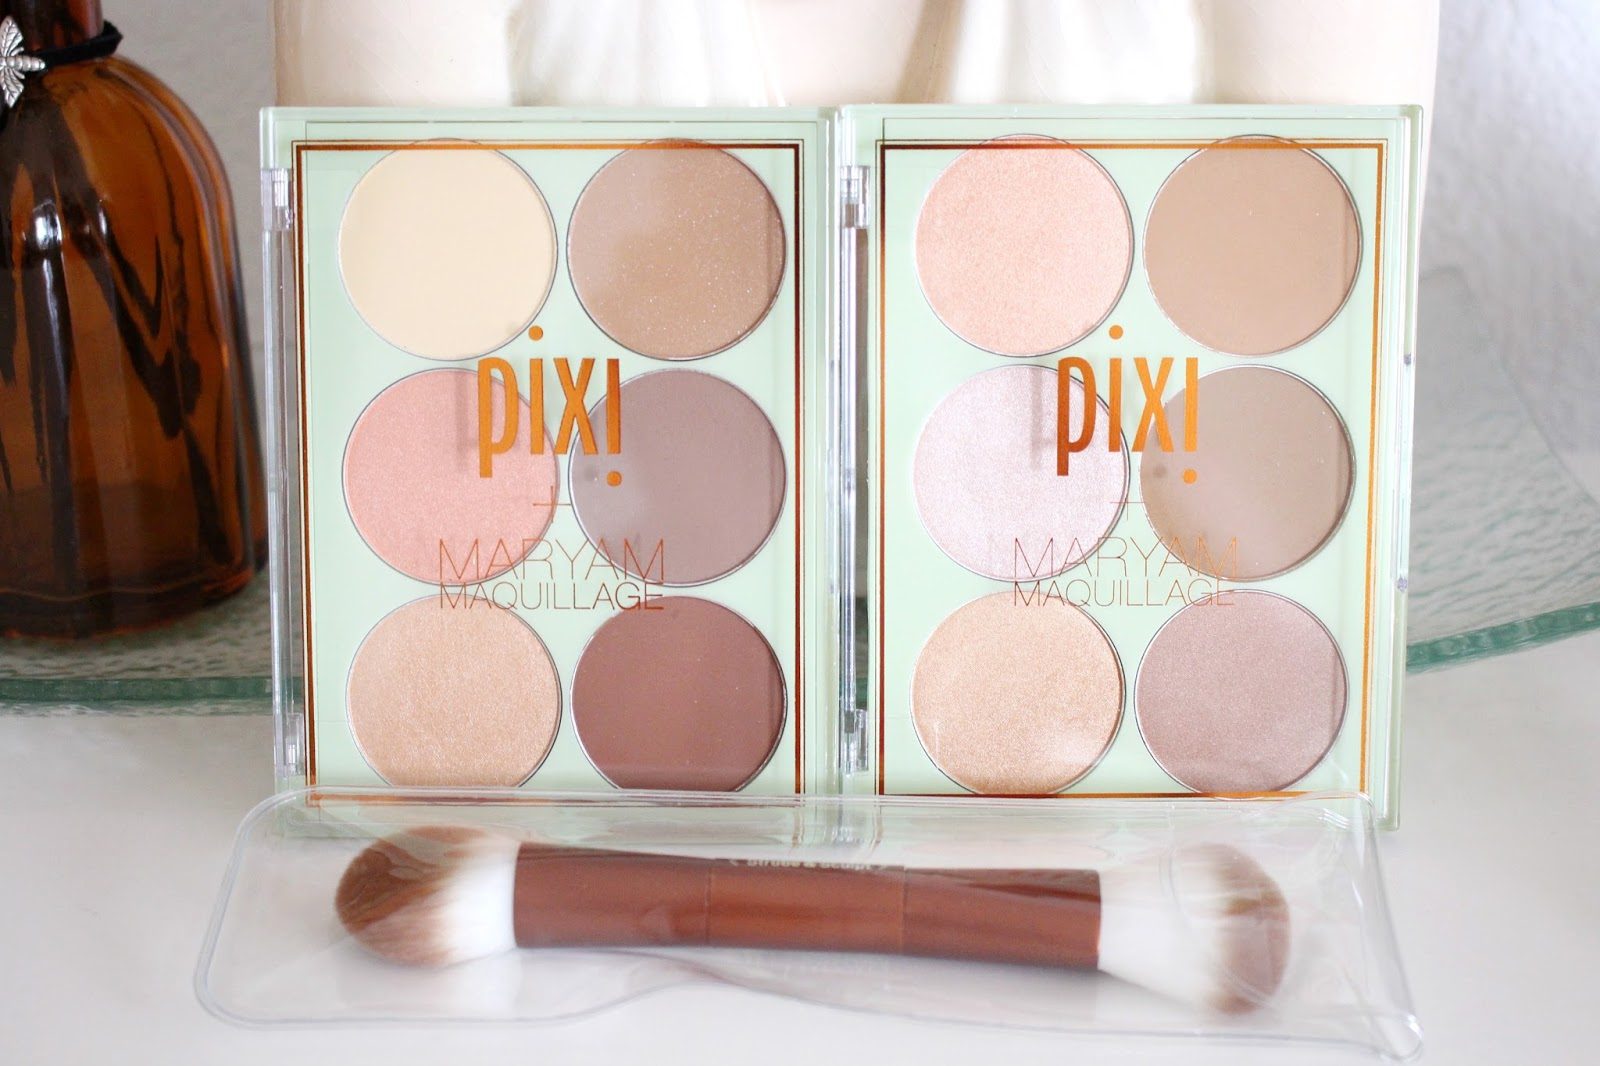 Pixi Beauty Maryam Maquillage Strobe & Bronze Glow & Bronze Palette & Strobe & Sculpt Highlight & Contour Palette